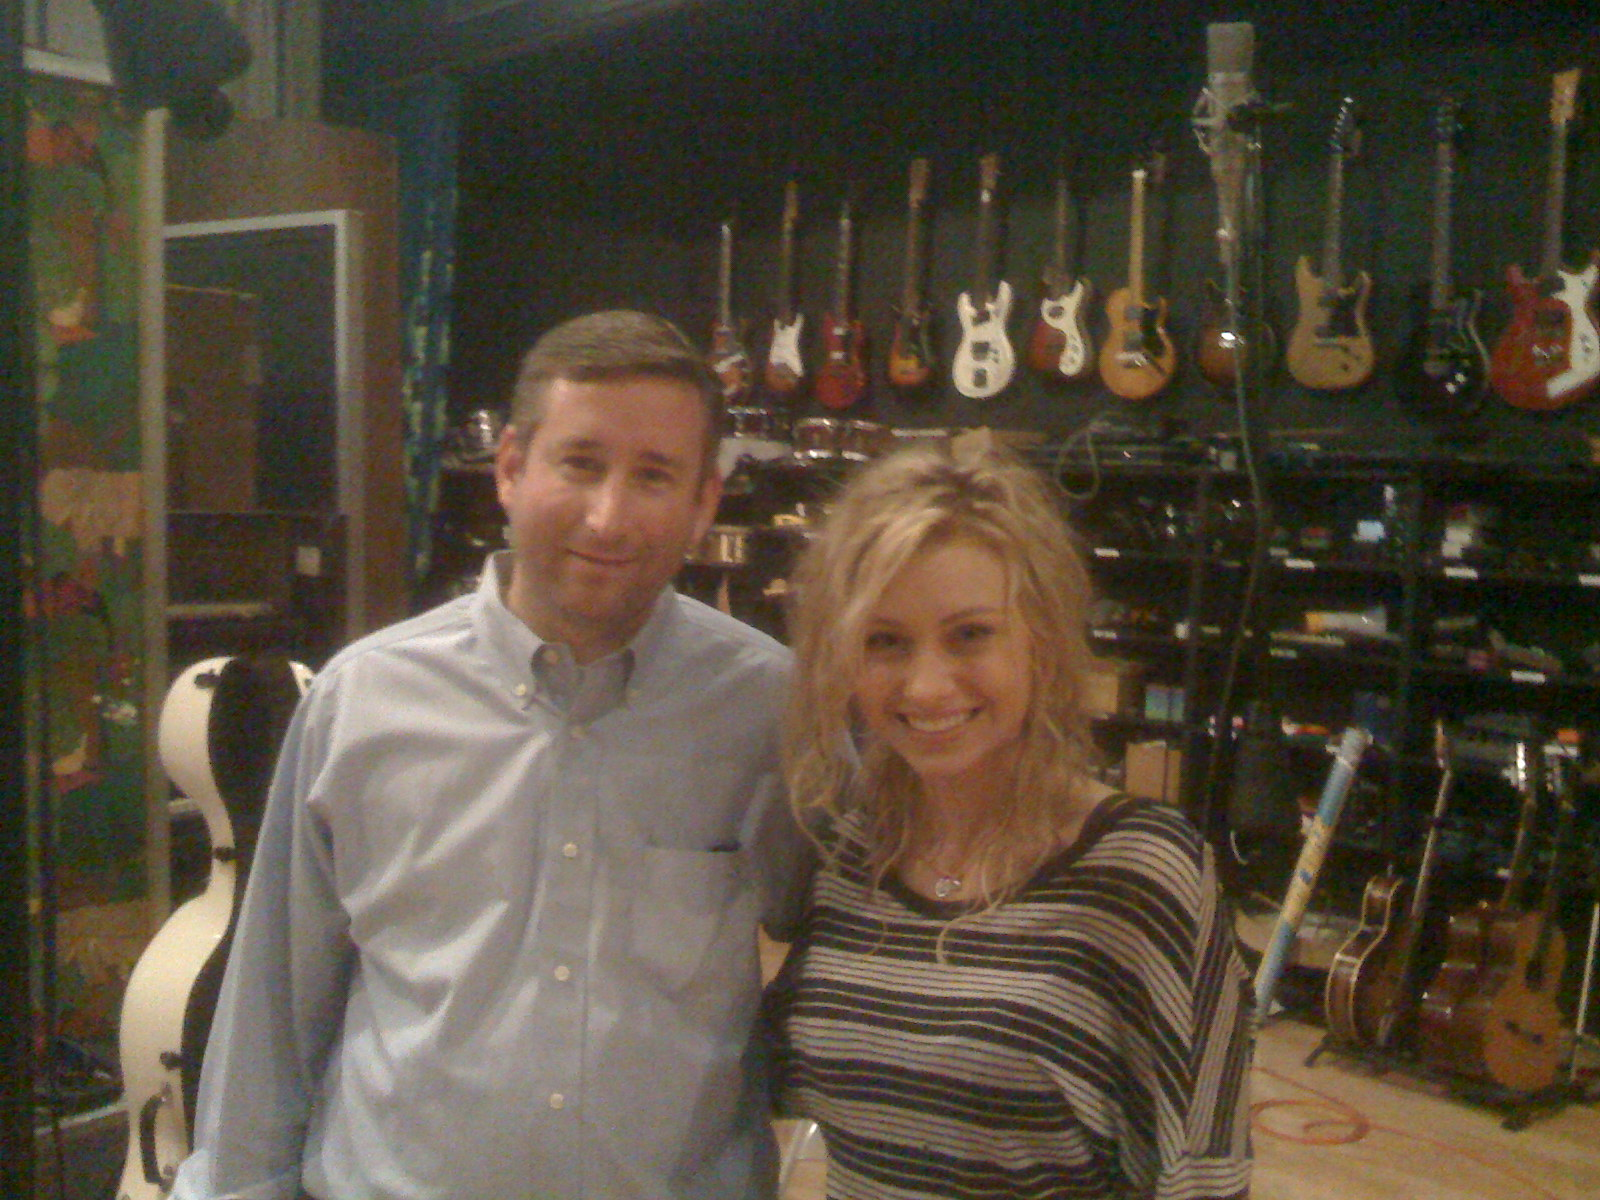 Mark with Aly from Aly & AJ (now known as 78violet) arr. Deborah Lurie